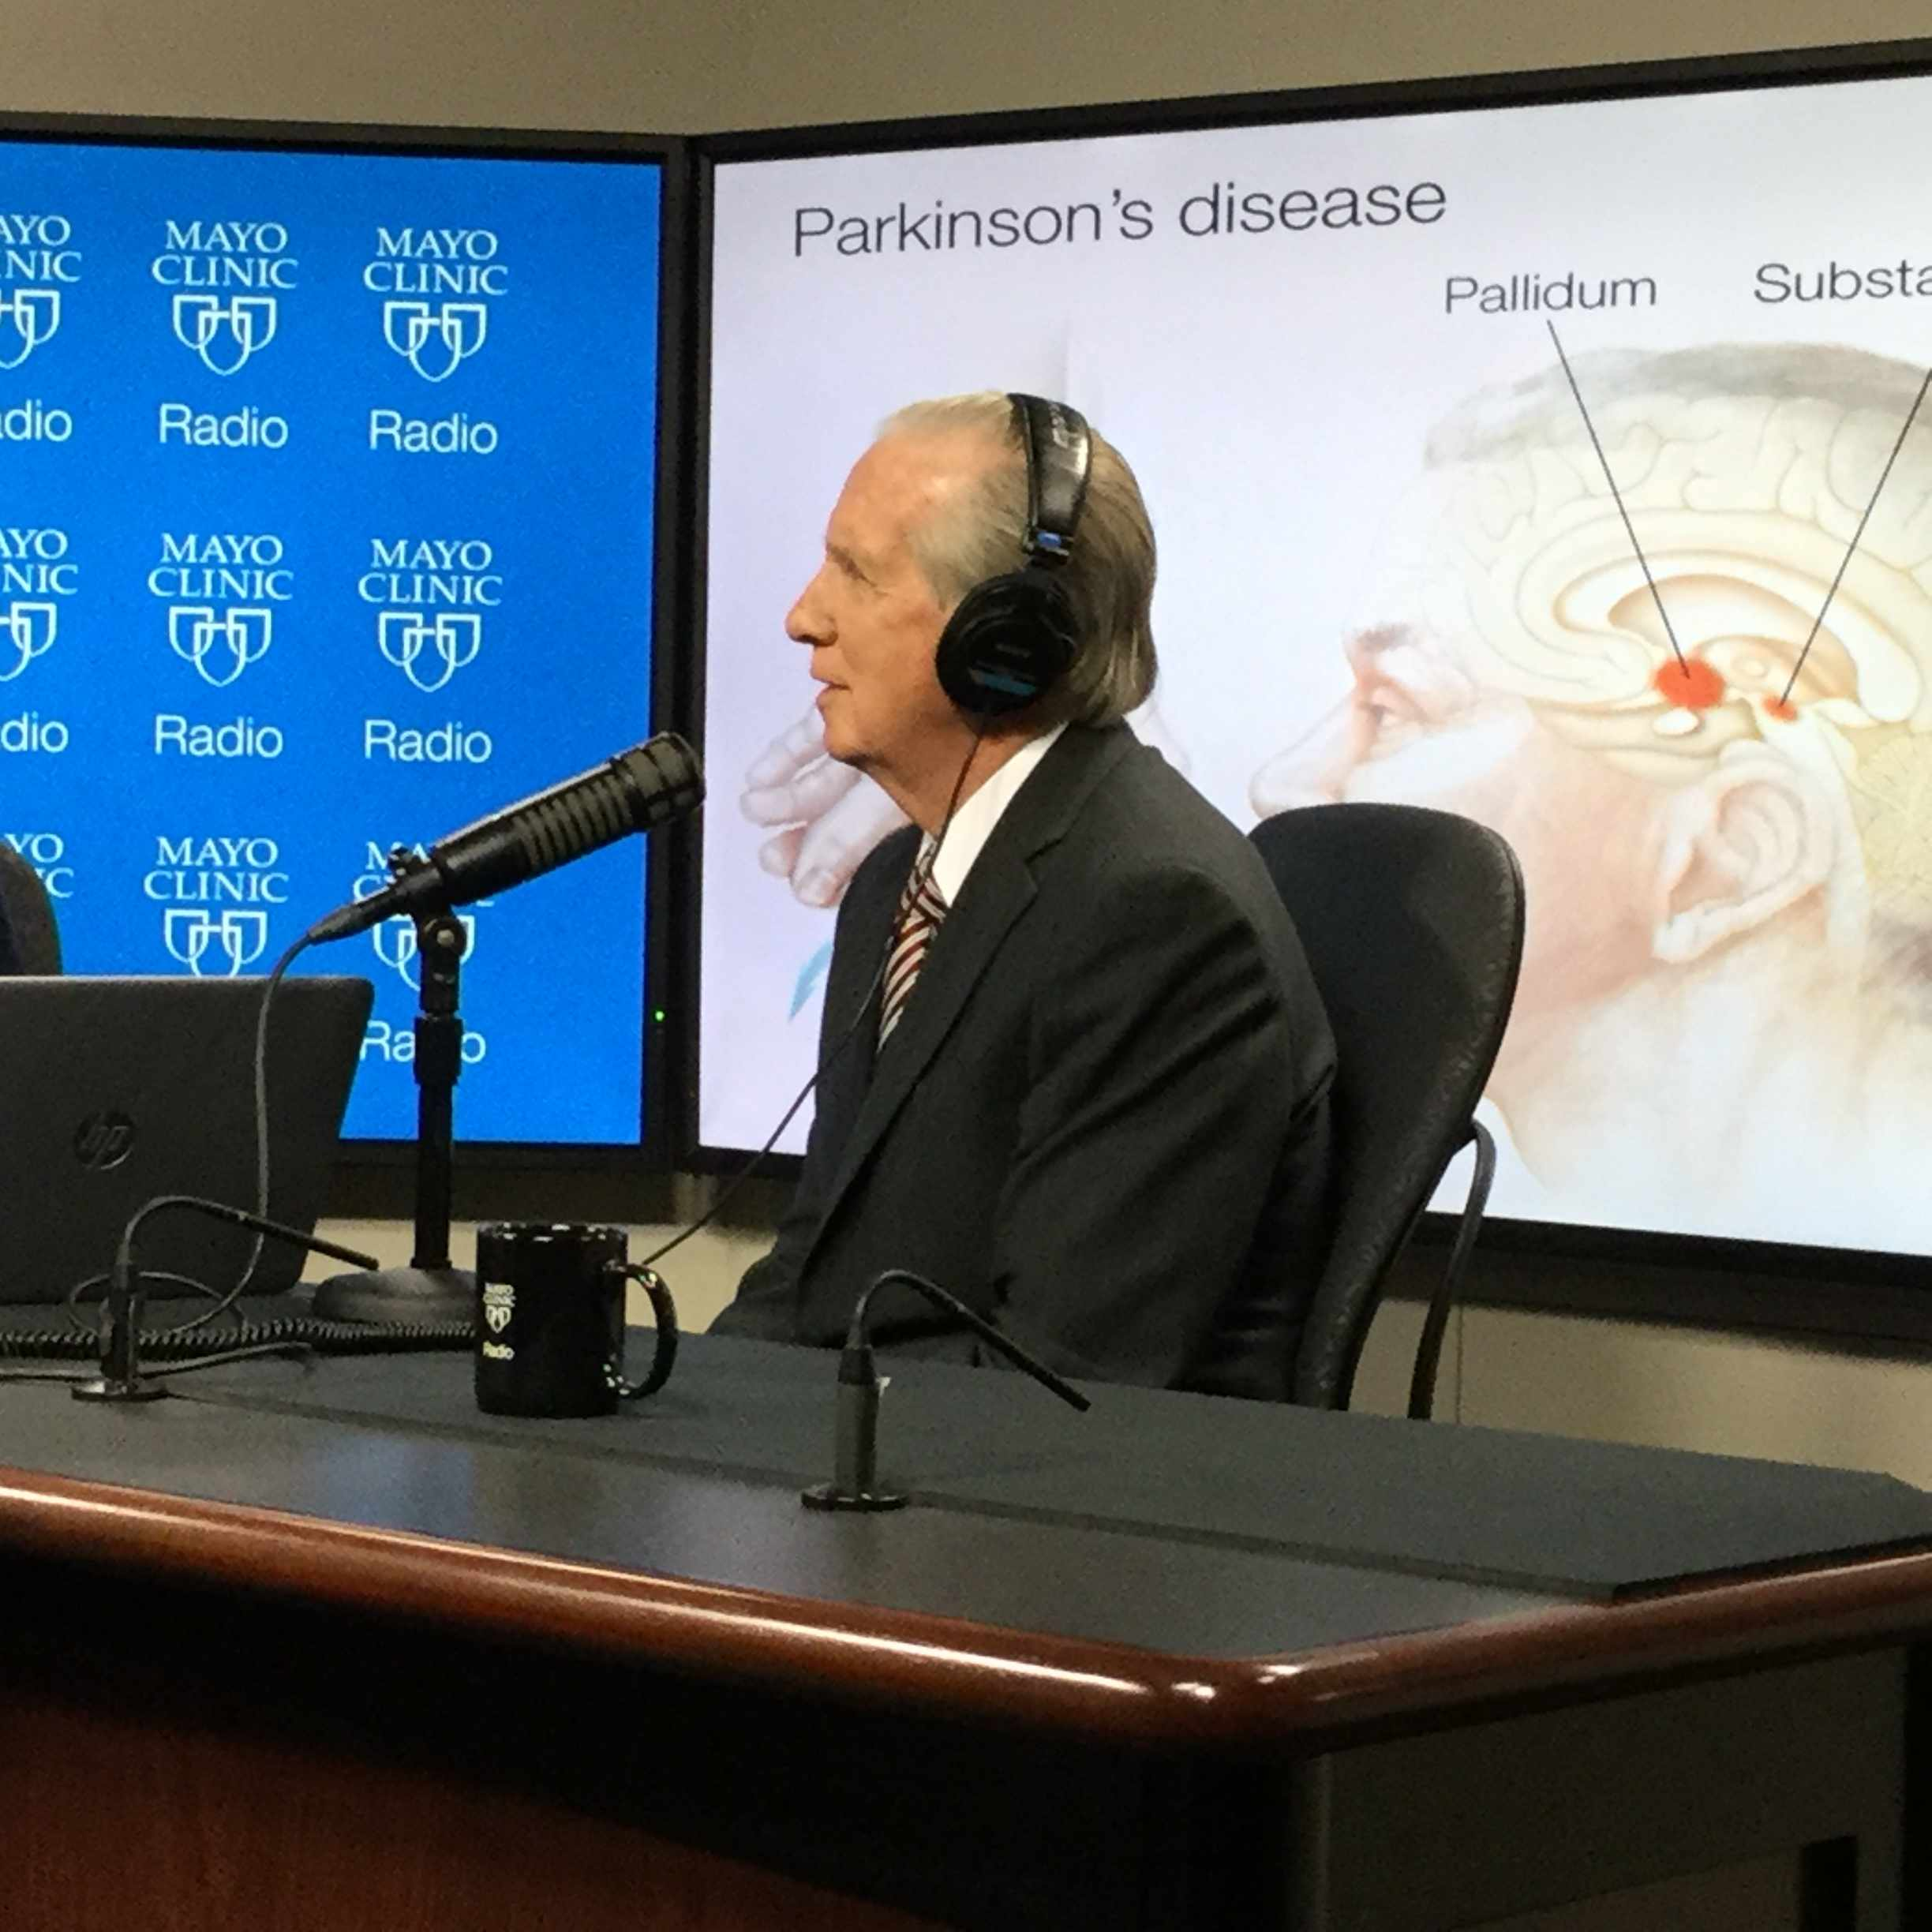 Dr. J. Eric Ahlskog being interviewed on Mayo Clinic Radio